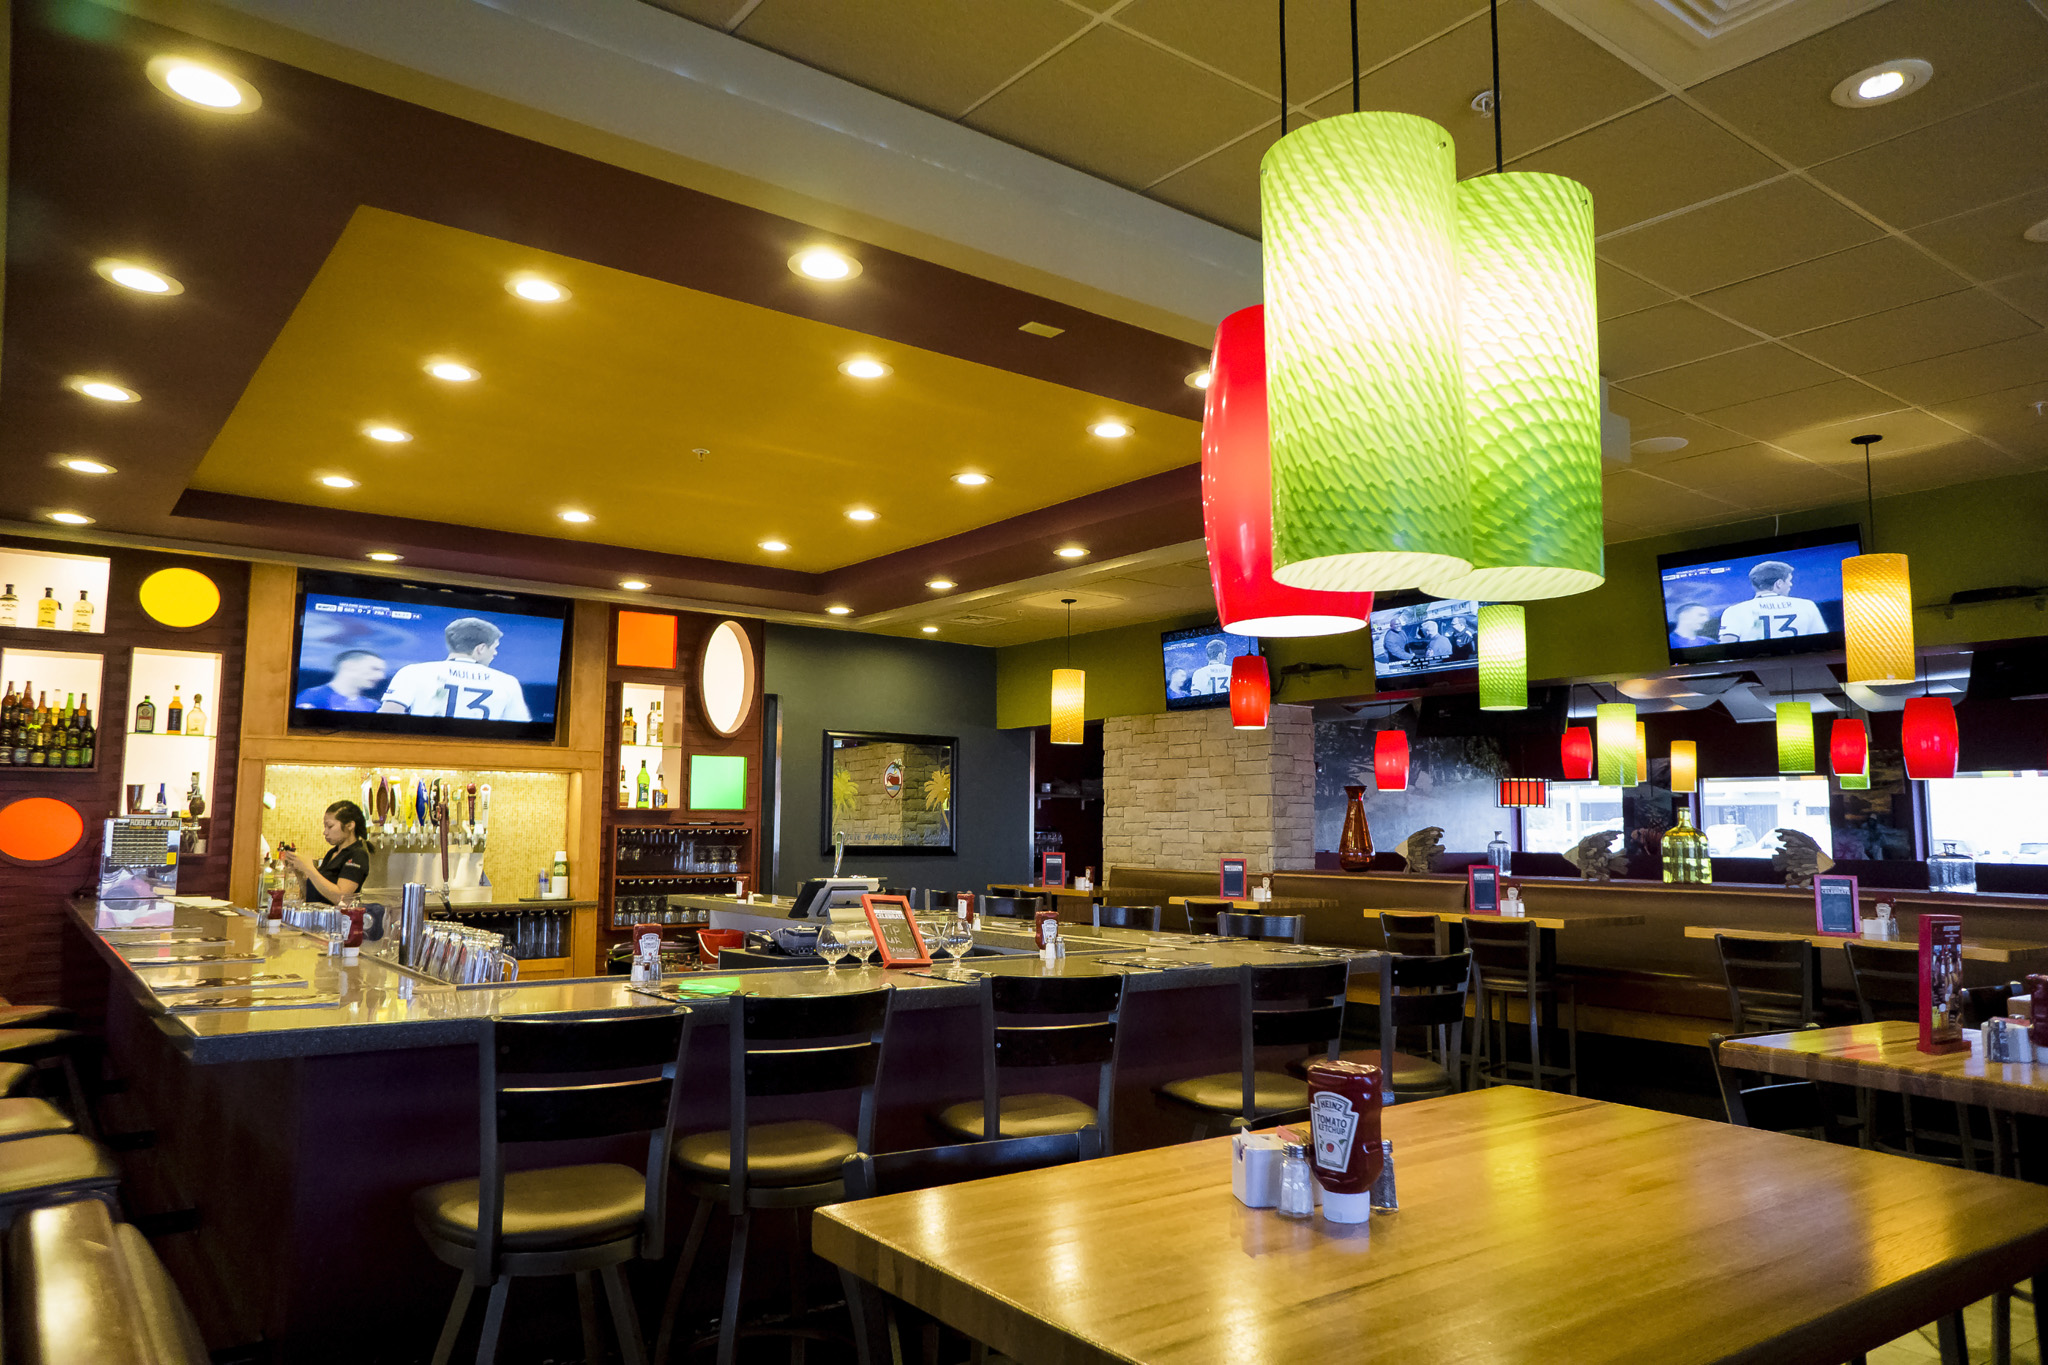 Applebees Interior 1.jpg